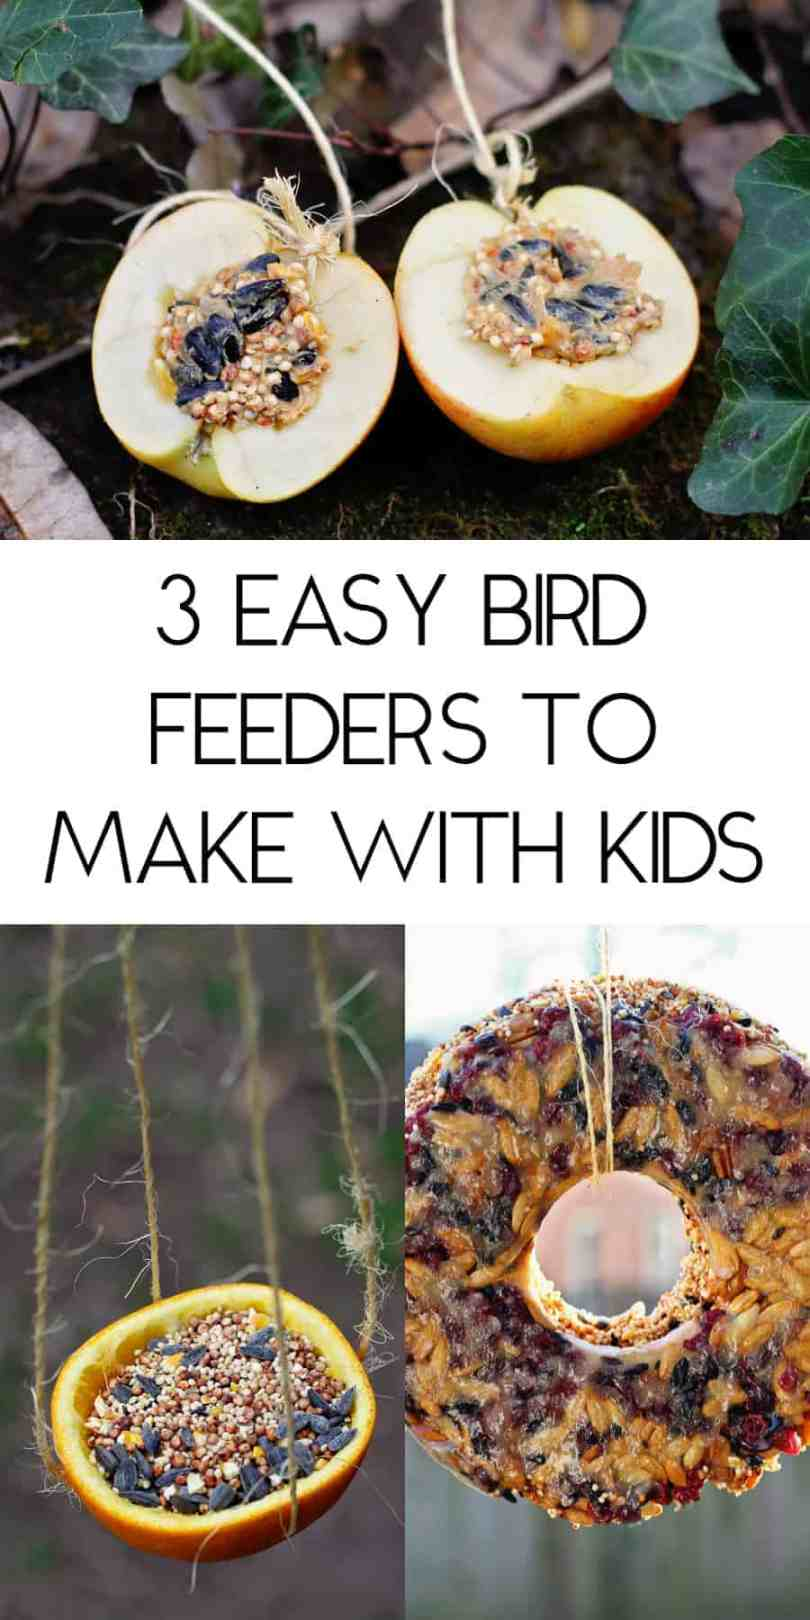 3 easy bird feeders to make with kids